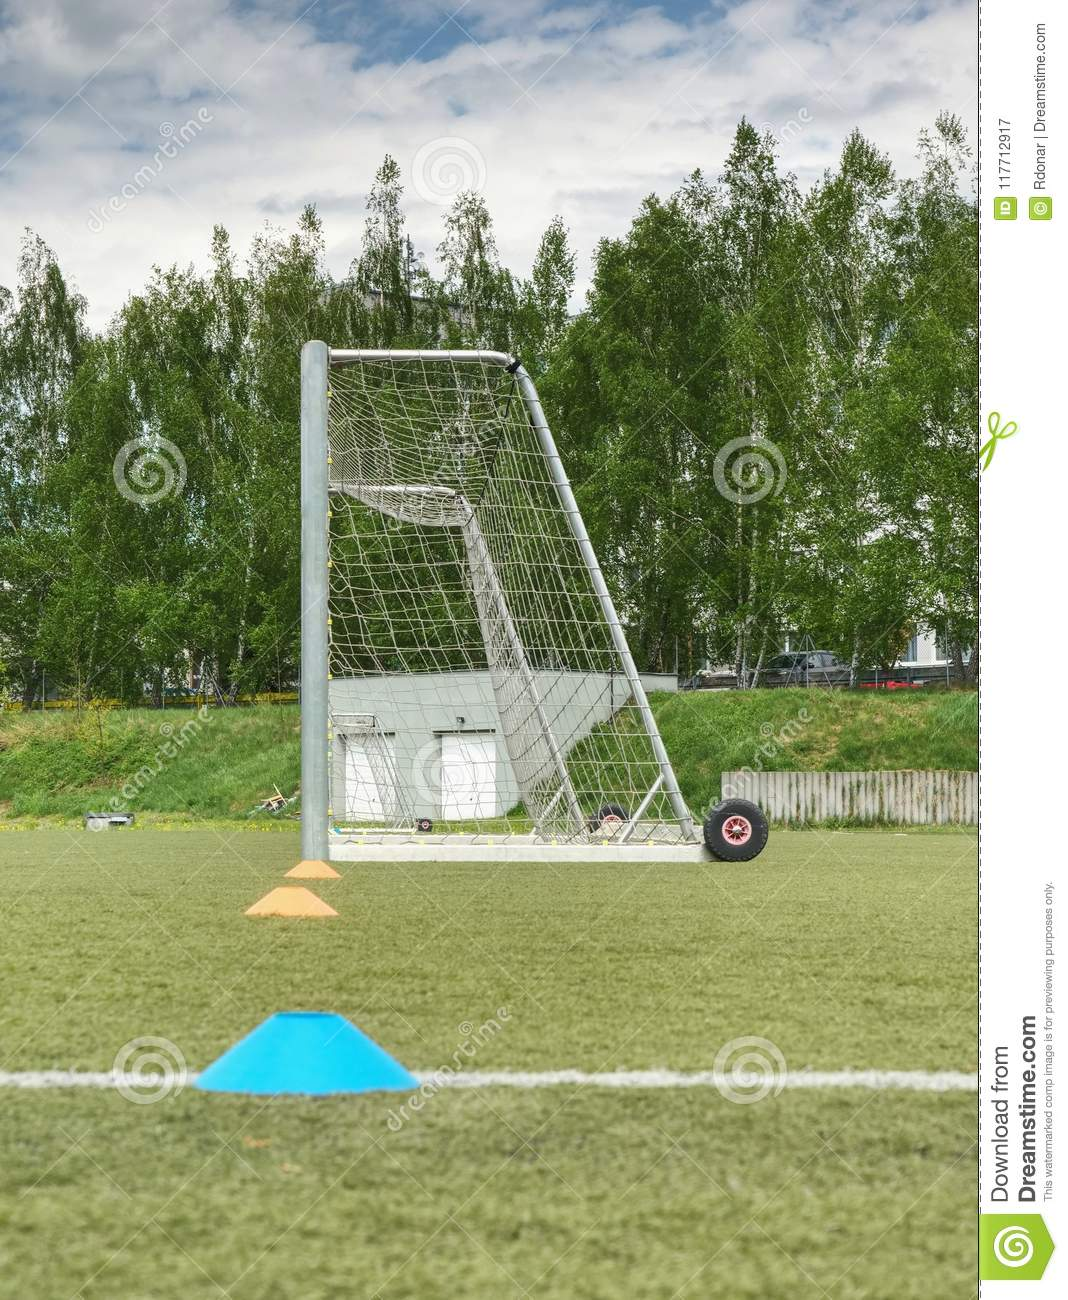 d0b1c3539 Soccer Field Behind Goal Net Stock Images - Download 249 Royalty Free Photos